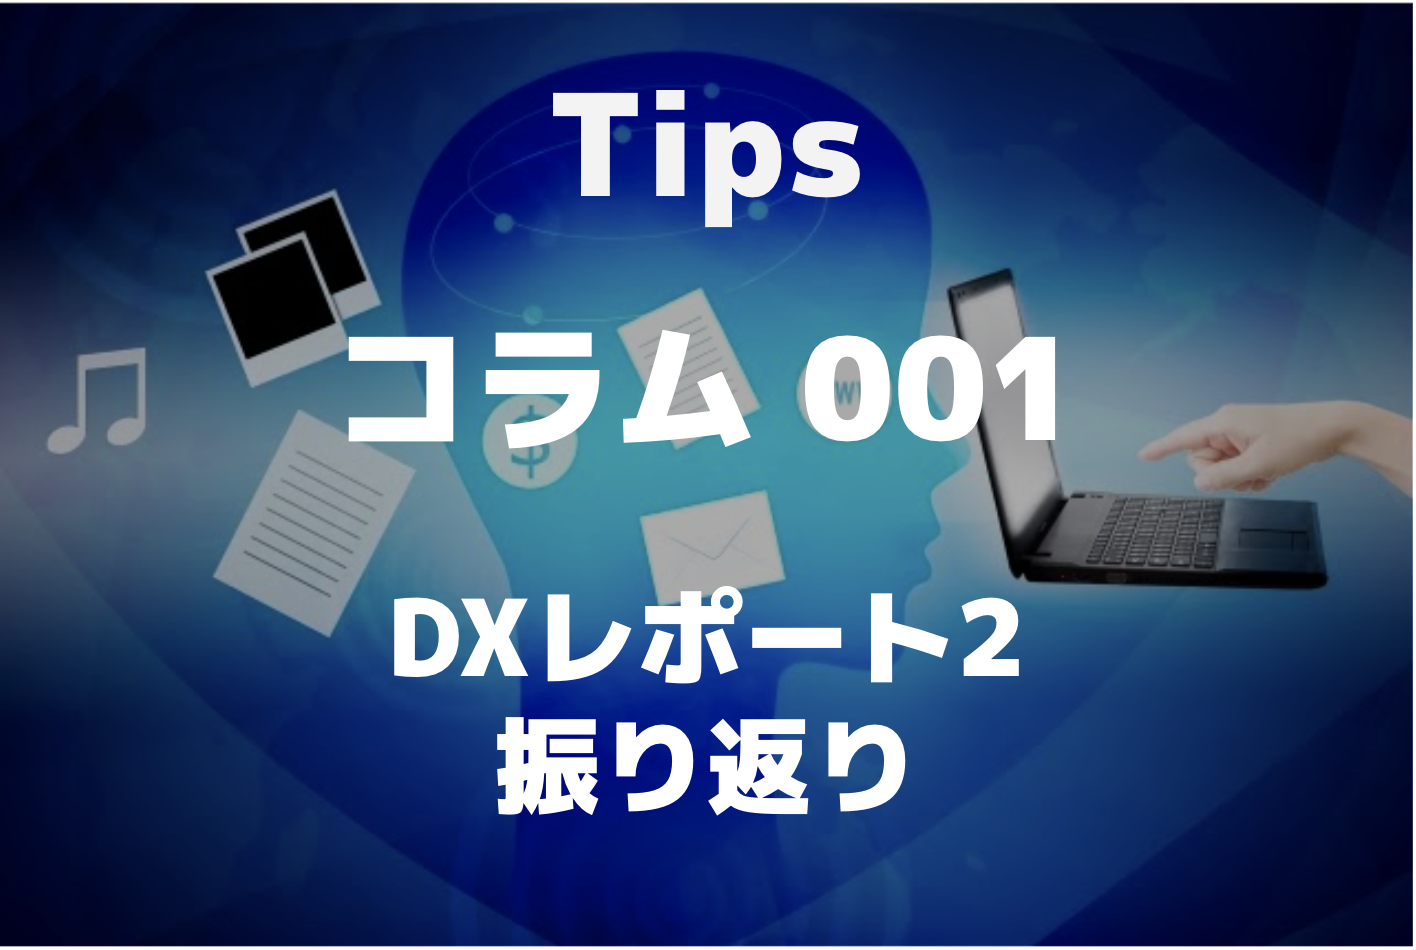 Tipsコラム001DXレポート2の振り返り